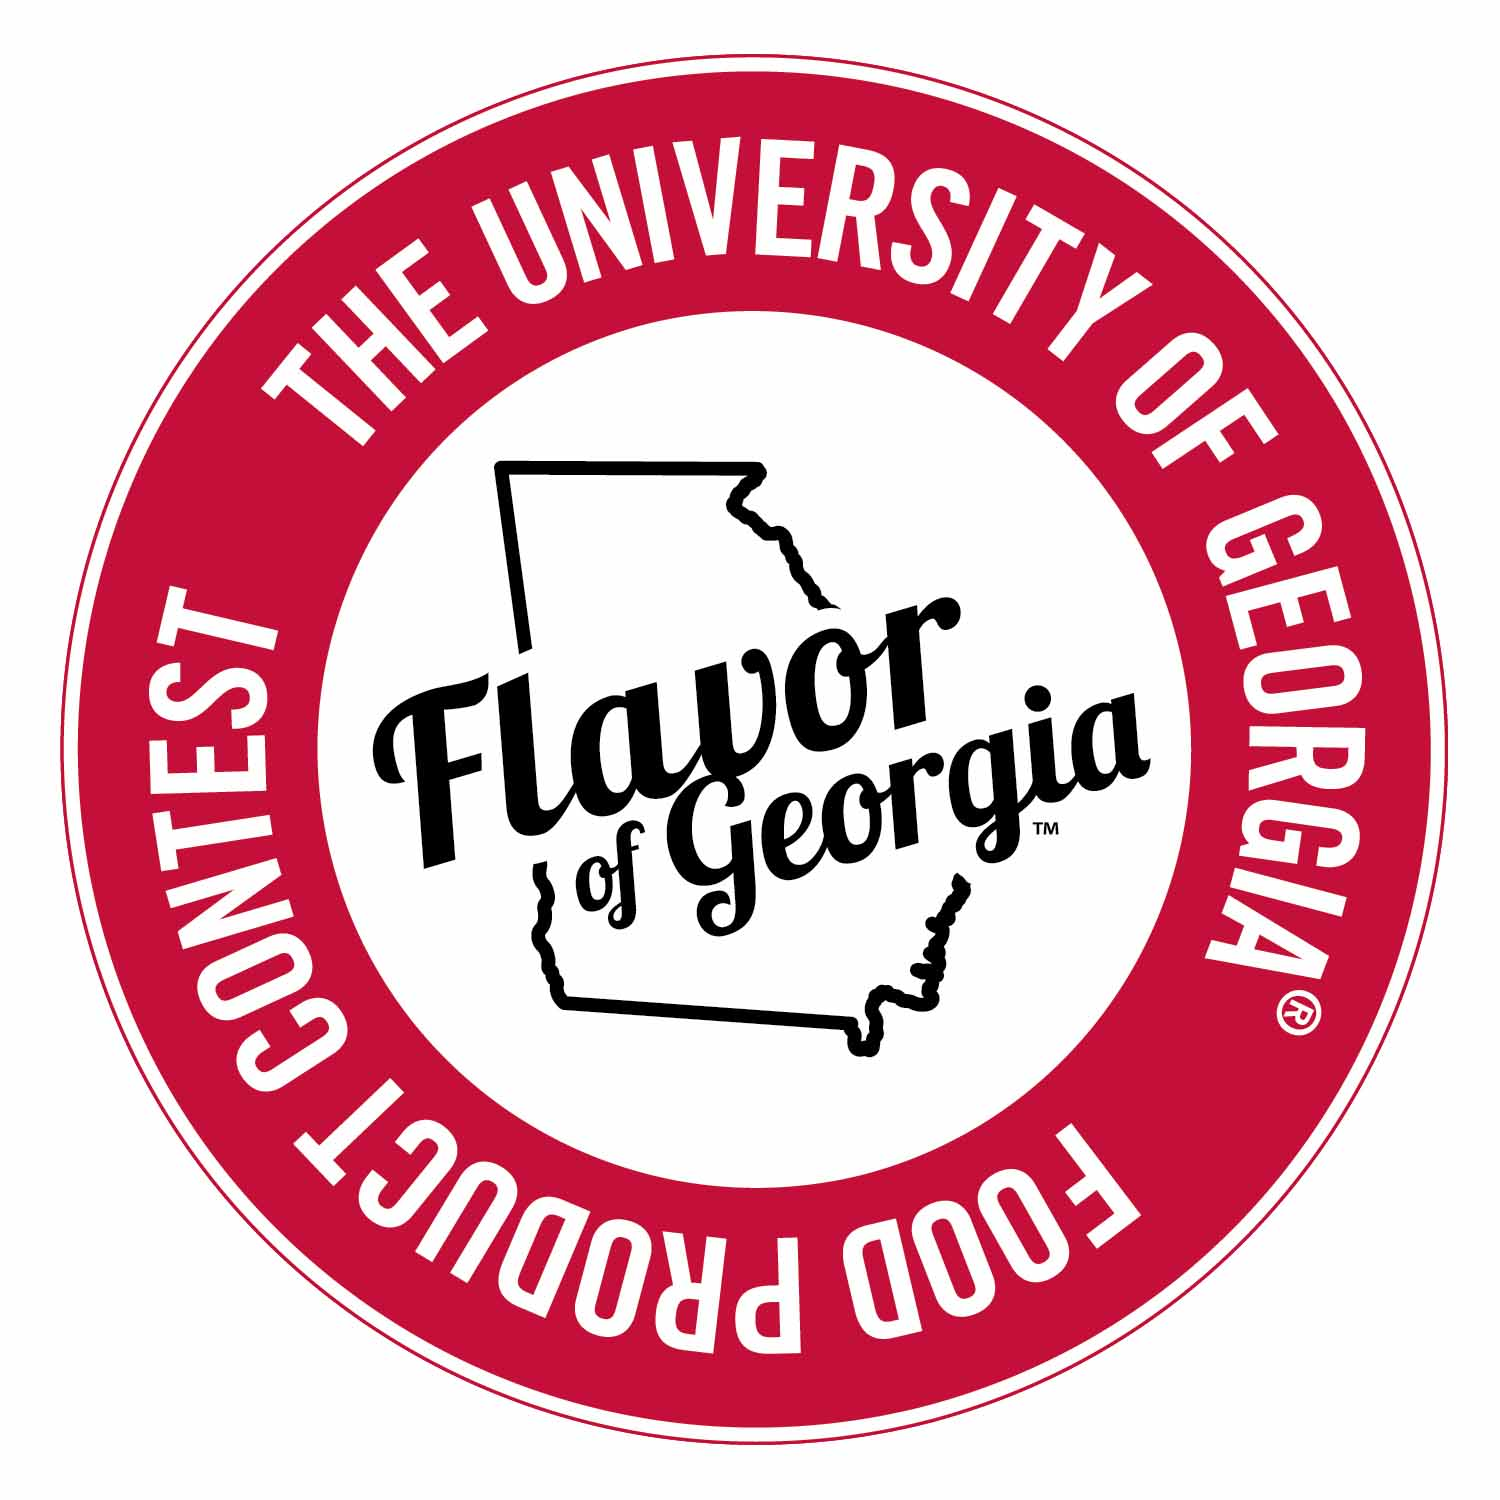 Registration for the UGA 2018 Flavor of Georgia Food Product Contest contest is now open at flavorofga.com.